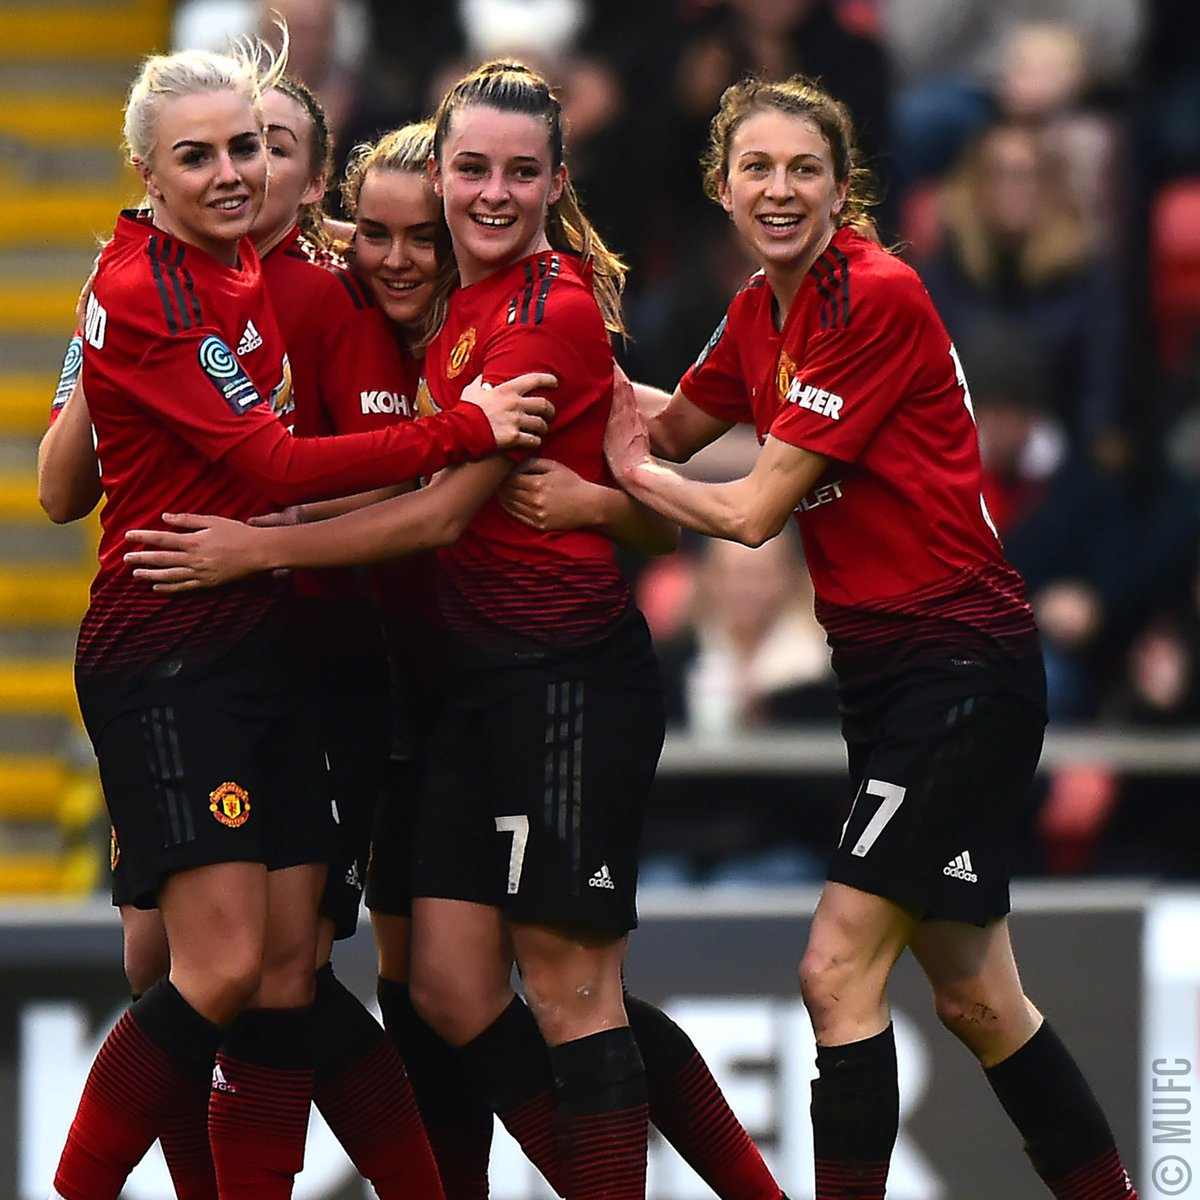 How about these #MUWomen stats for #MondayMotivation? 1️⃣6️⃣ games 1️⃣3️⃣ wins (and clean sheets!) 5️⃣2️⃣ goals (3.69 per game) 4️⃣ conceded (one every four games) 🔴⚪️⚫️